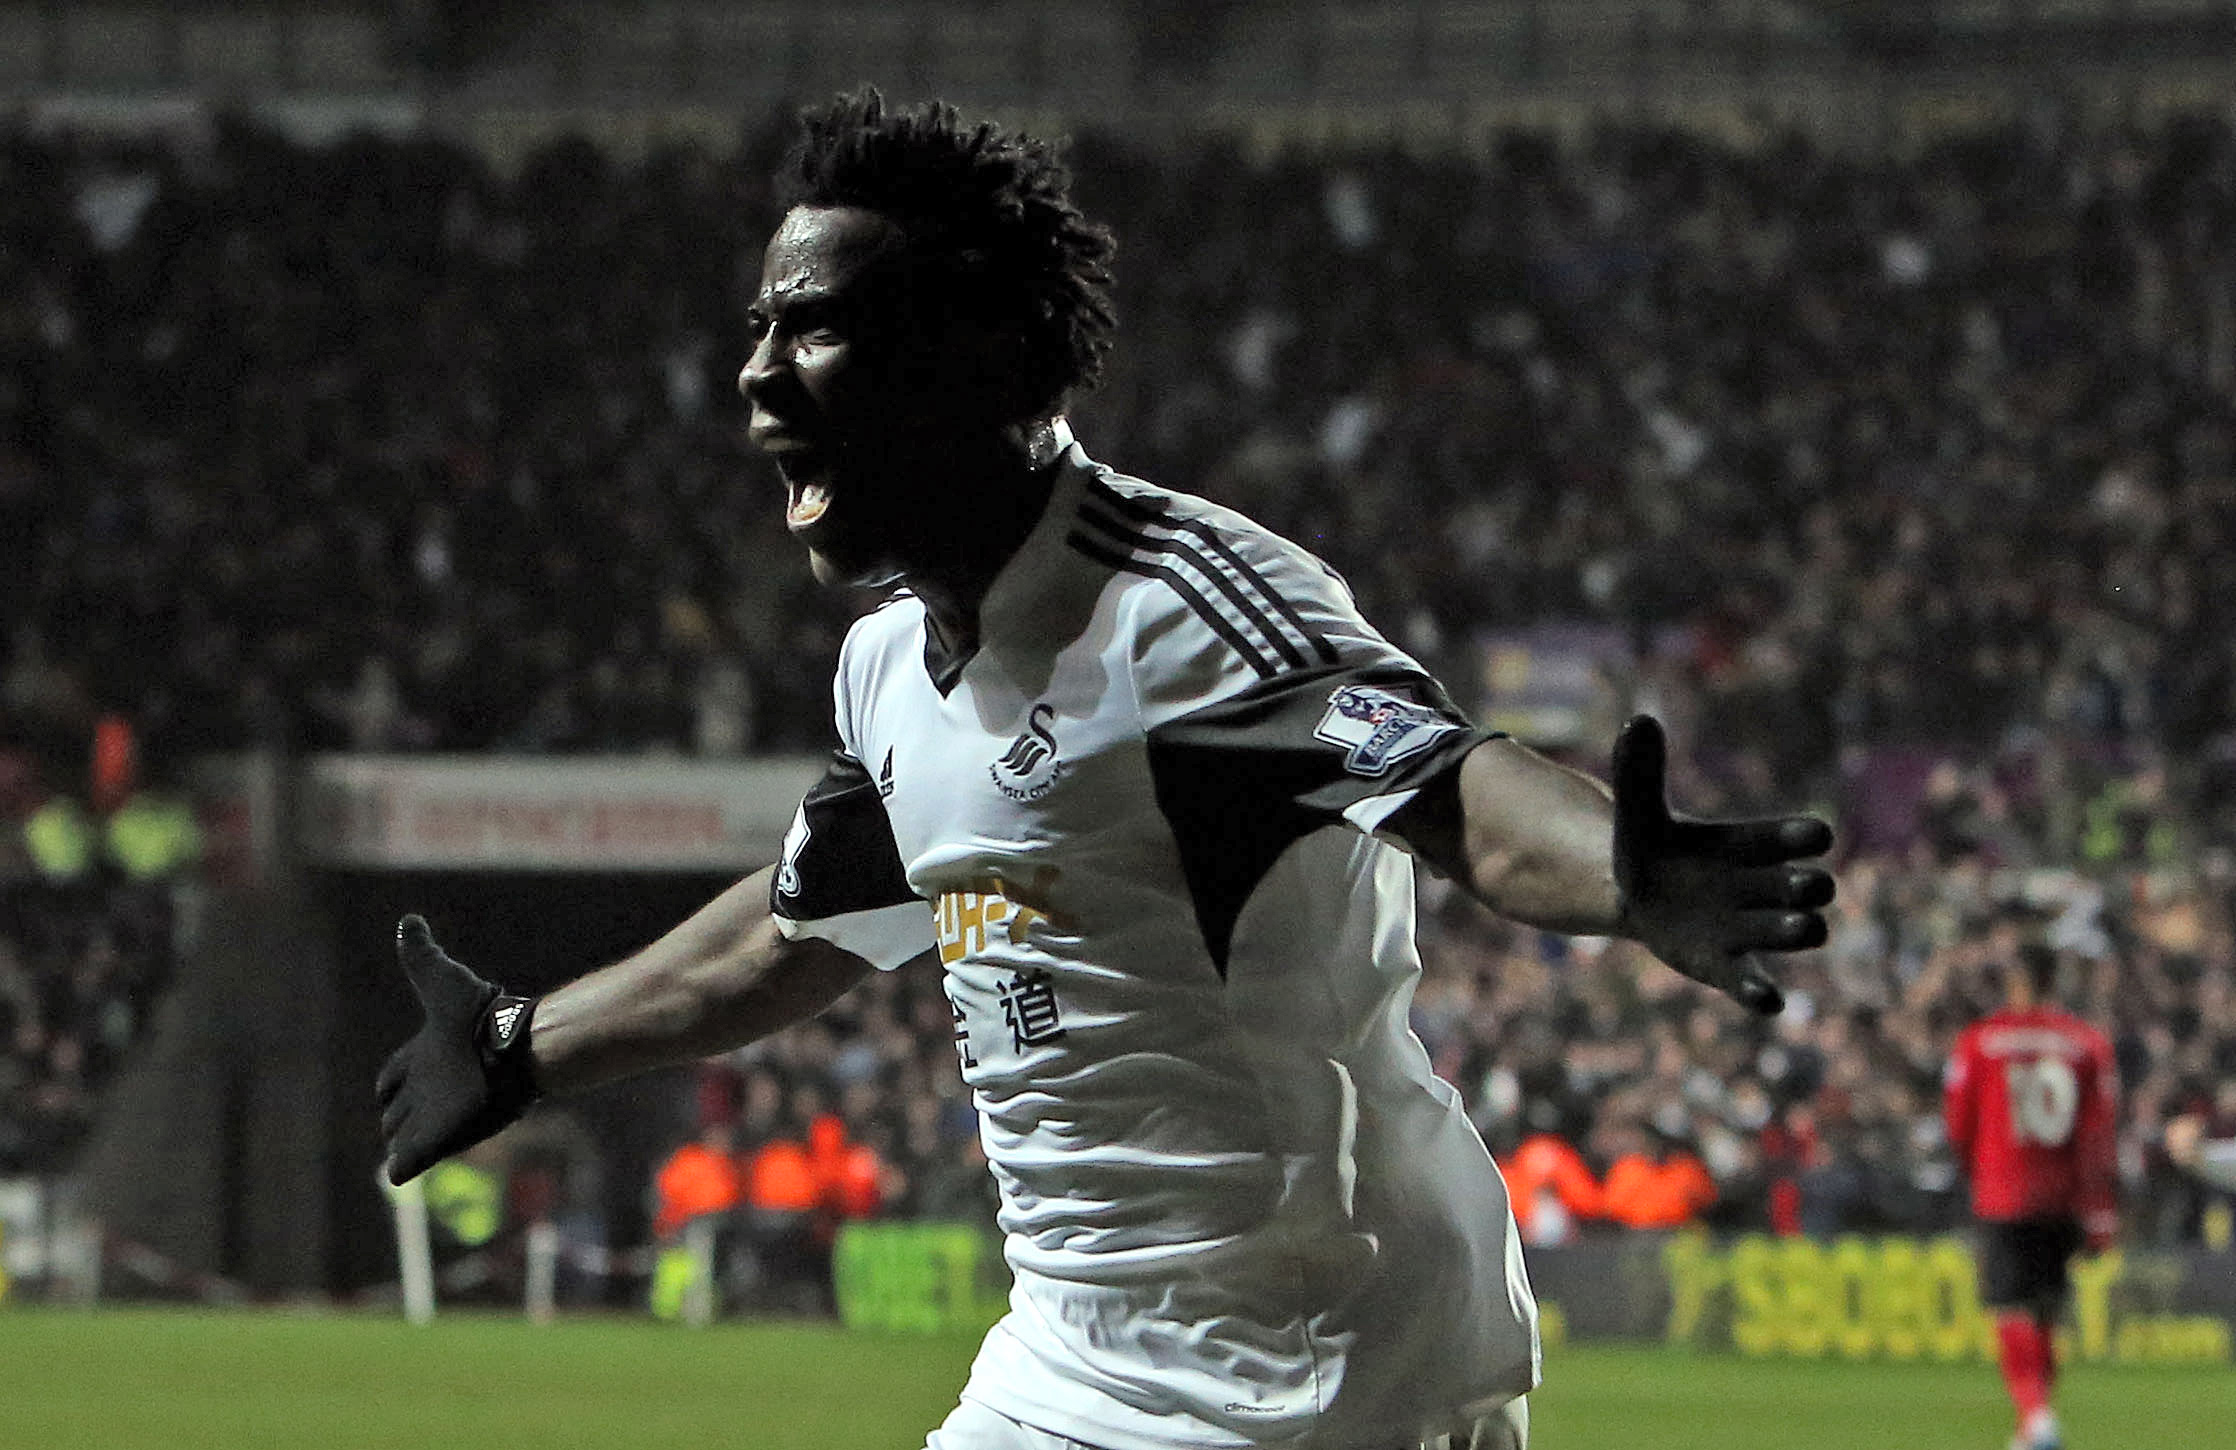 Swansea City's Bony fired up for Burnley Clash